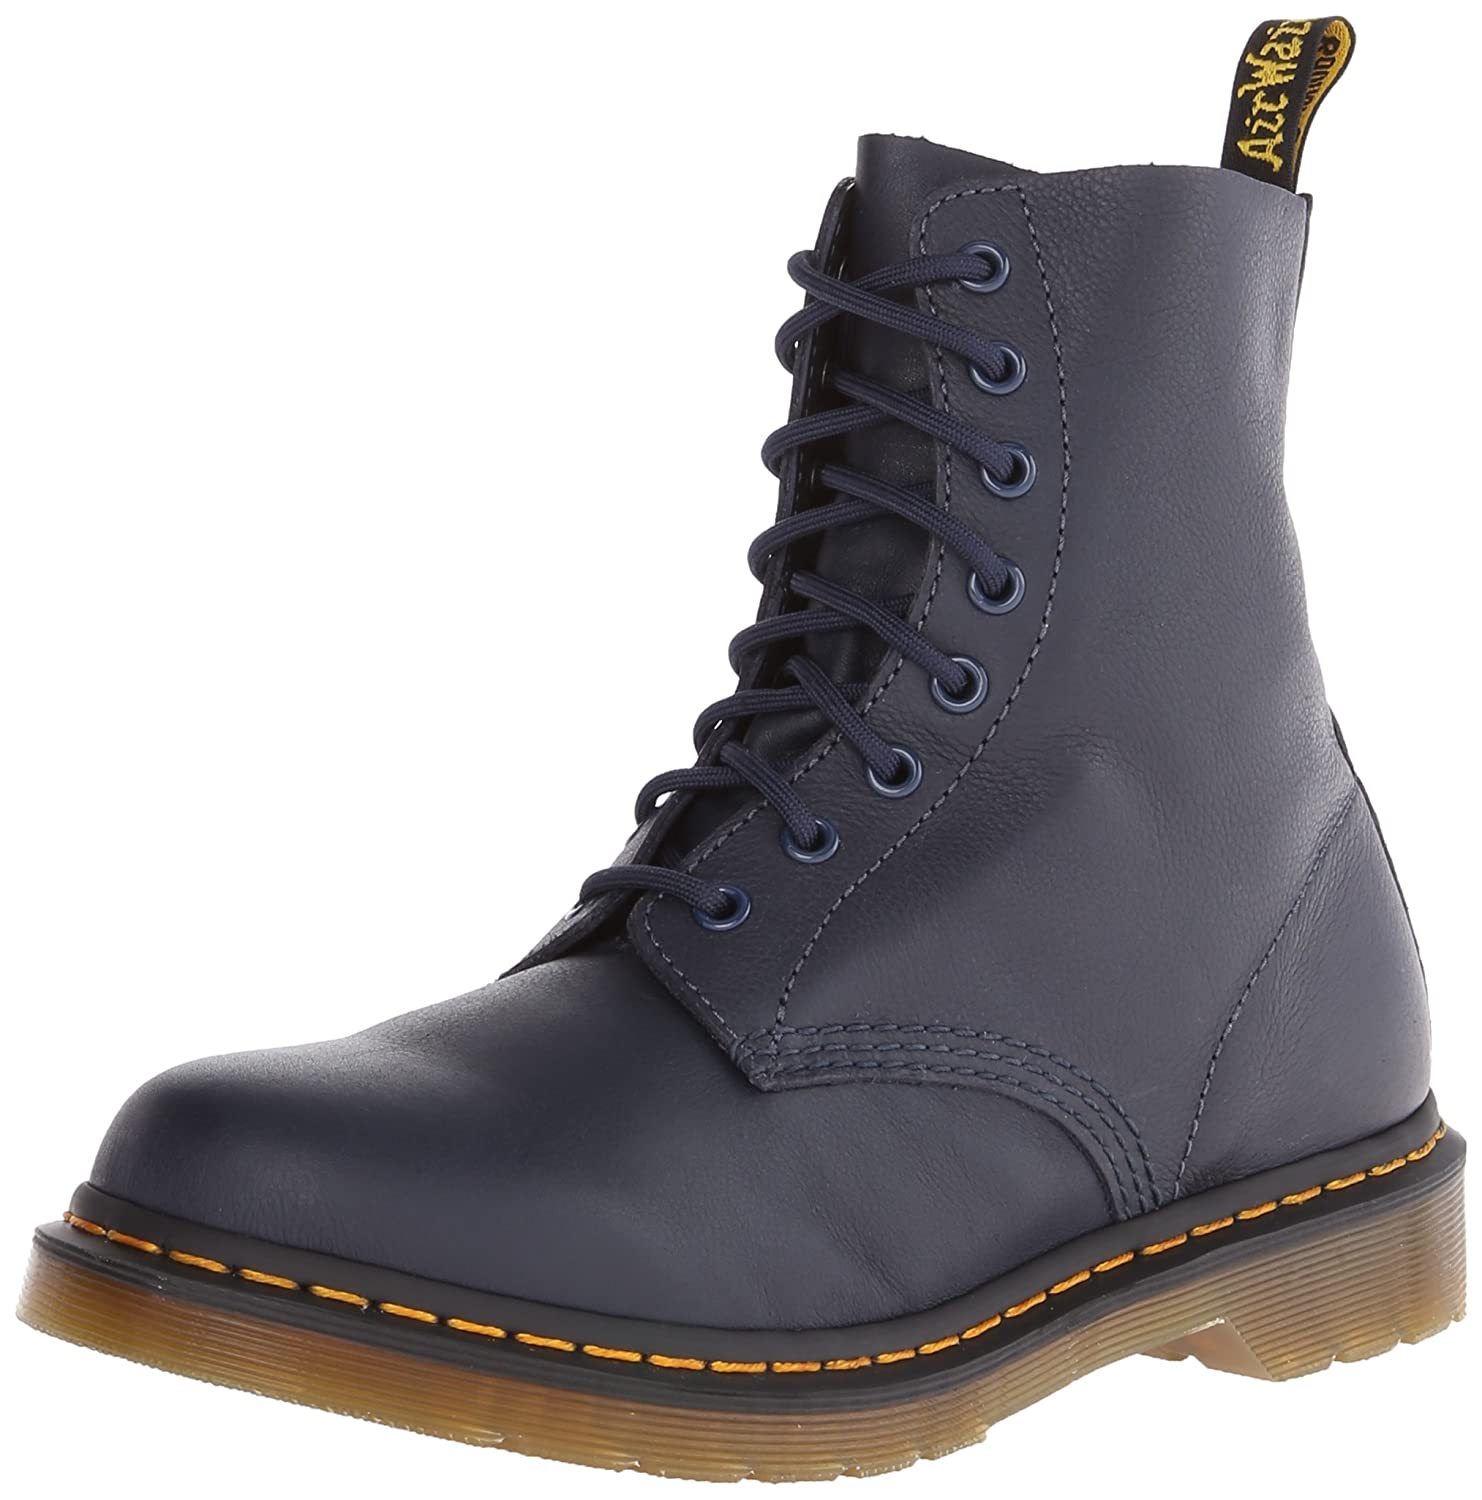 Dr. Martens Women's B00SVE8VJE Pascal Leather Combat Boot B00SVE8VJE Women's 8.5 B(M) US|Blue 284ec1